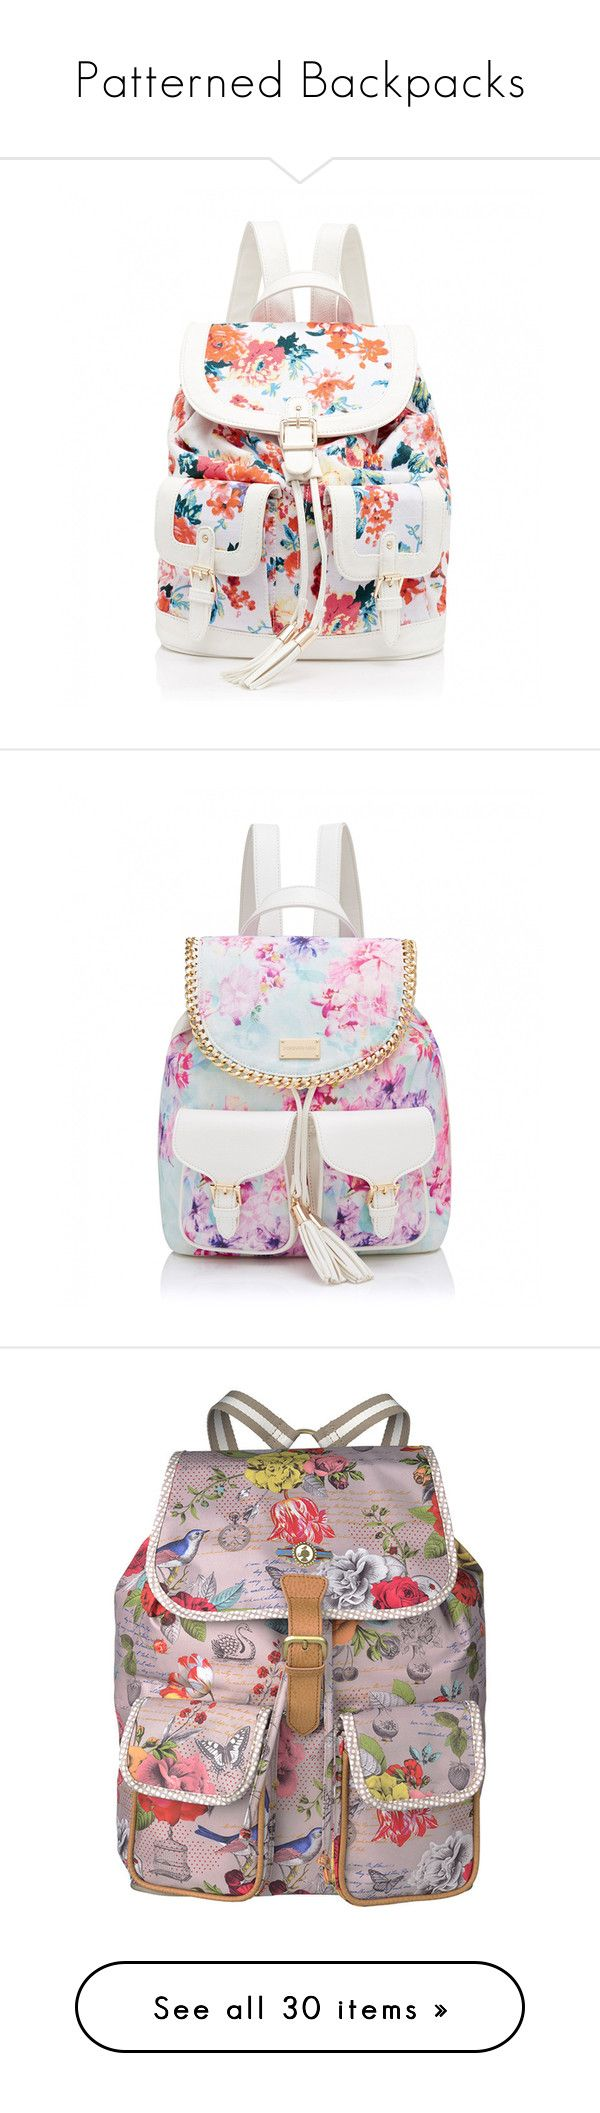 """Patterned Backpacks"" by girlwithherheadintheclouds ❤ liked on Polyvore featuring bags, backpacks, accessories, mochila, white floral print, white drawstring bag, white bag, rucksack bags, white floral backpack and white drawstring backpack"